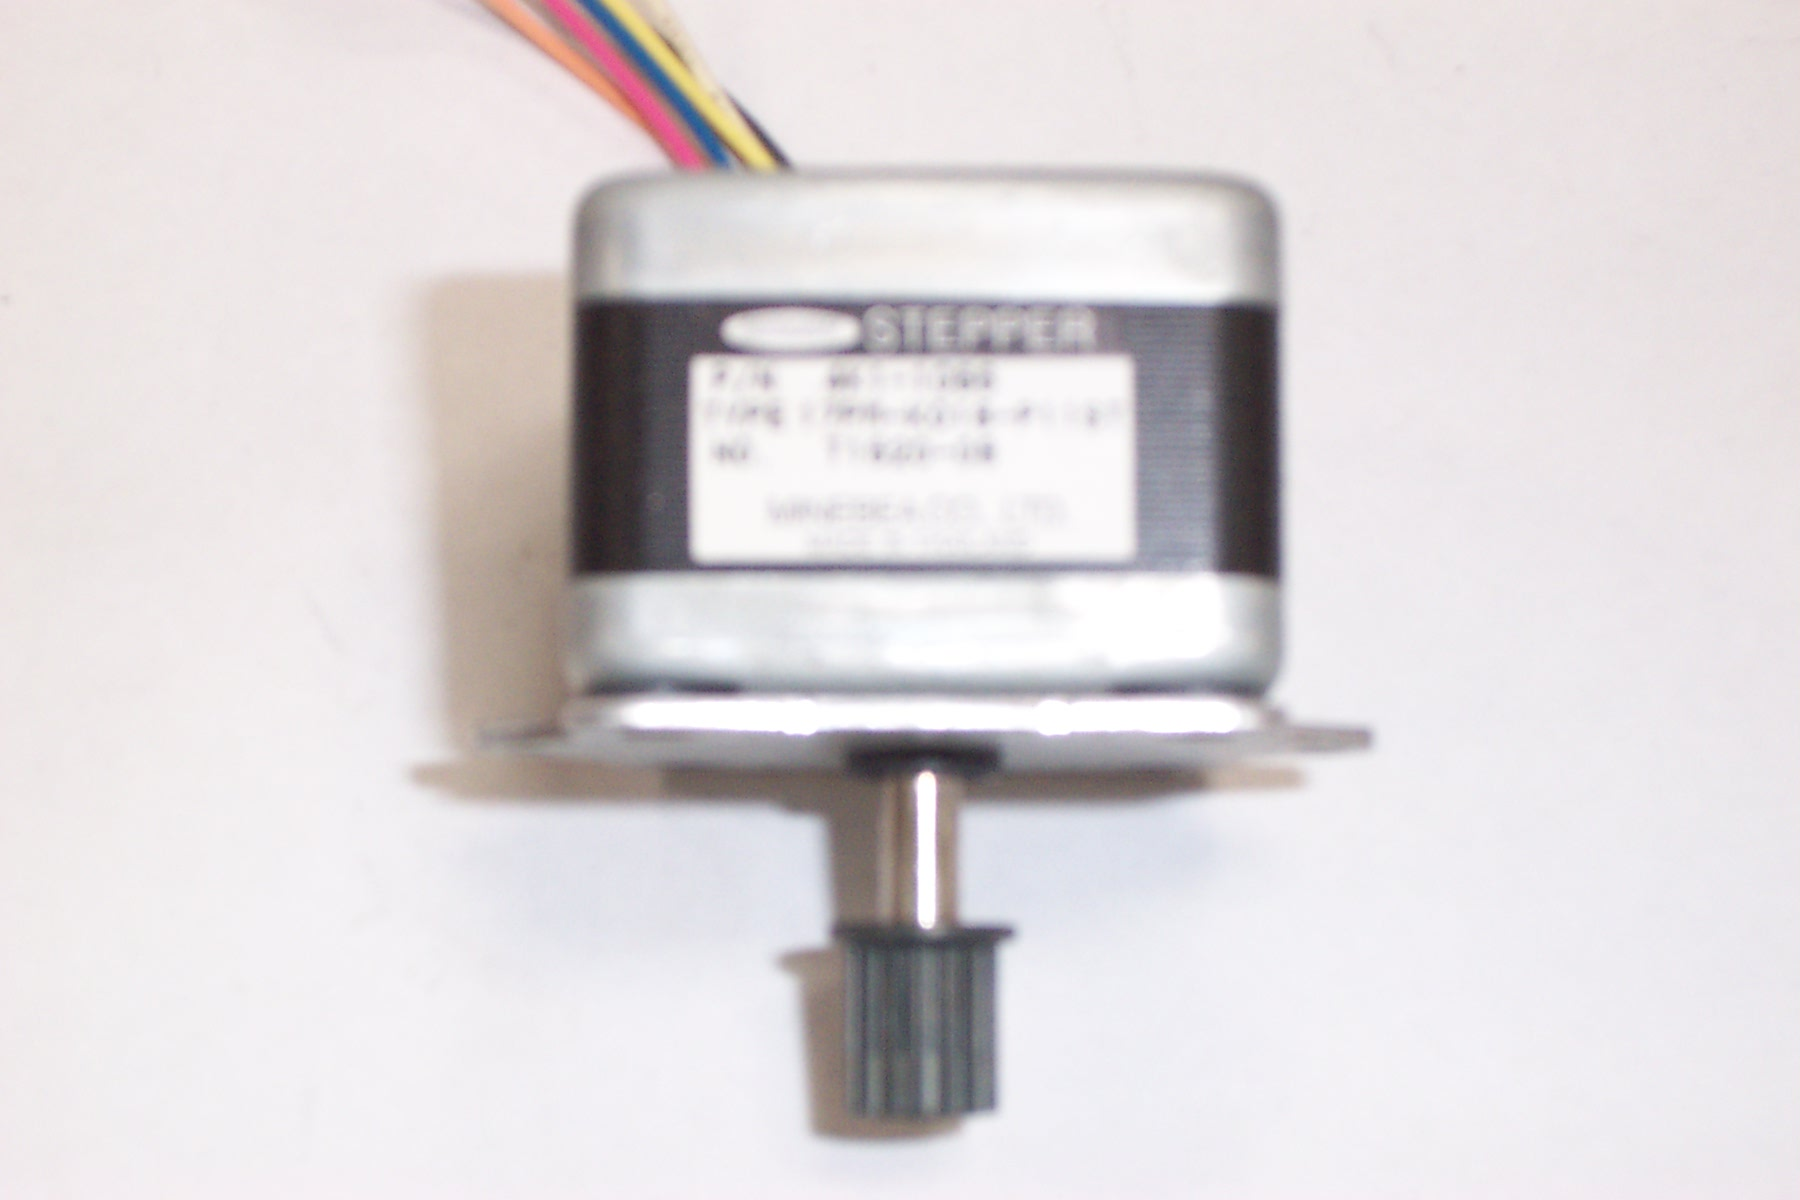 Minebea 17pm K018 P11st 1 8 Degree Stepper Motor Ebay